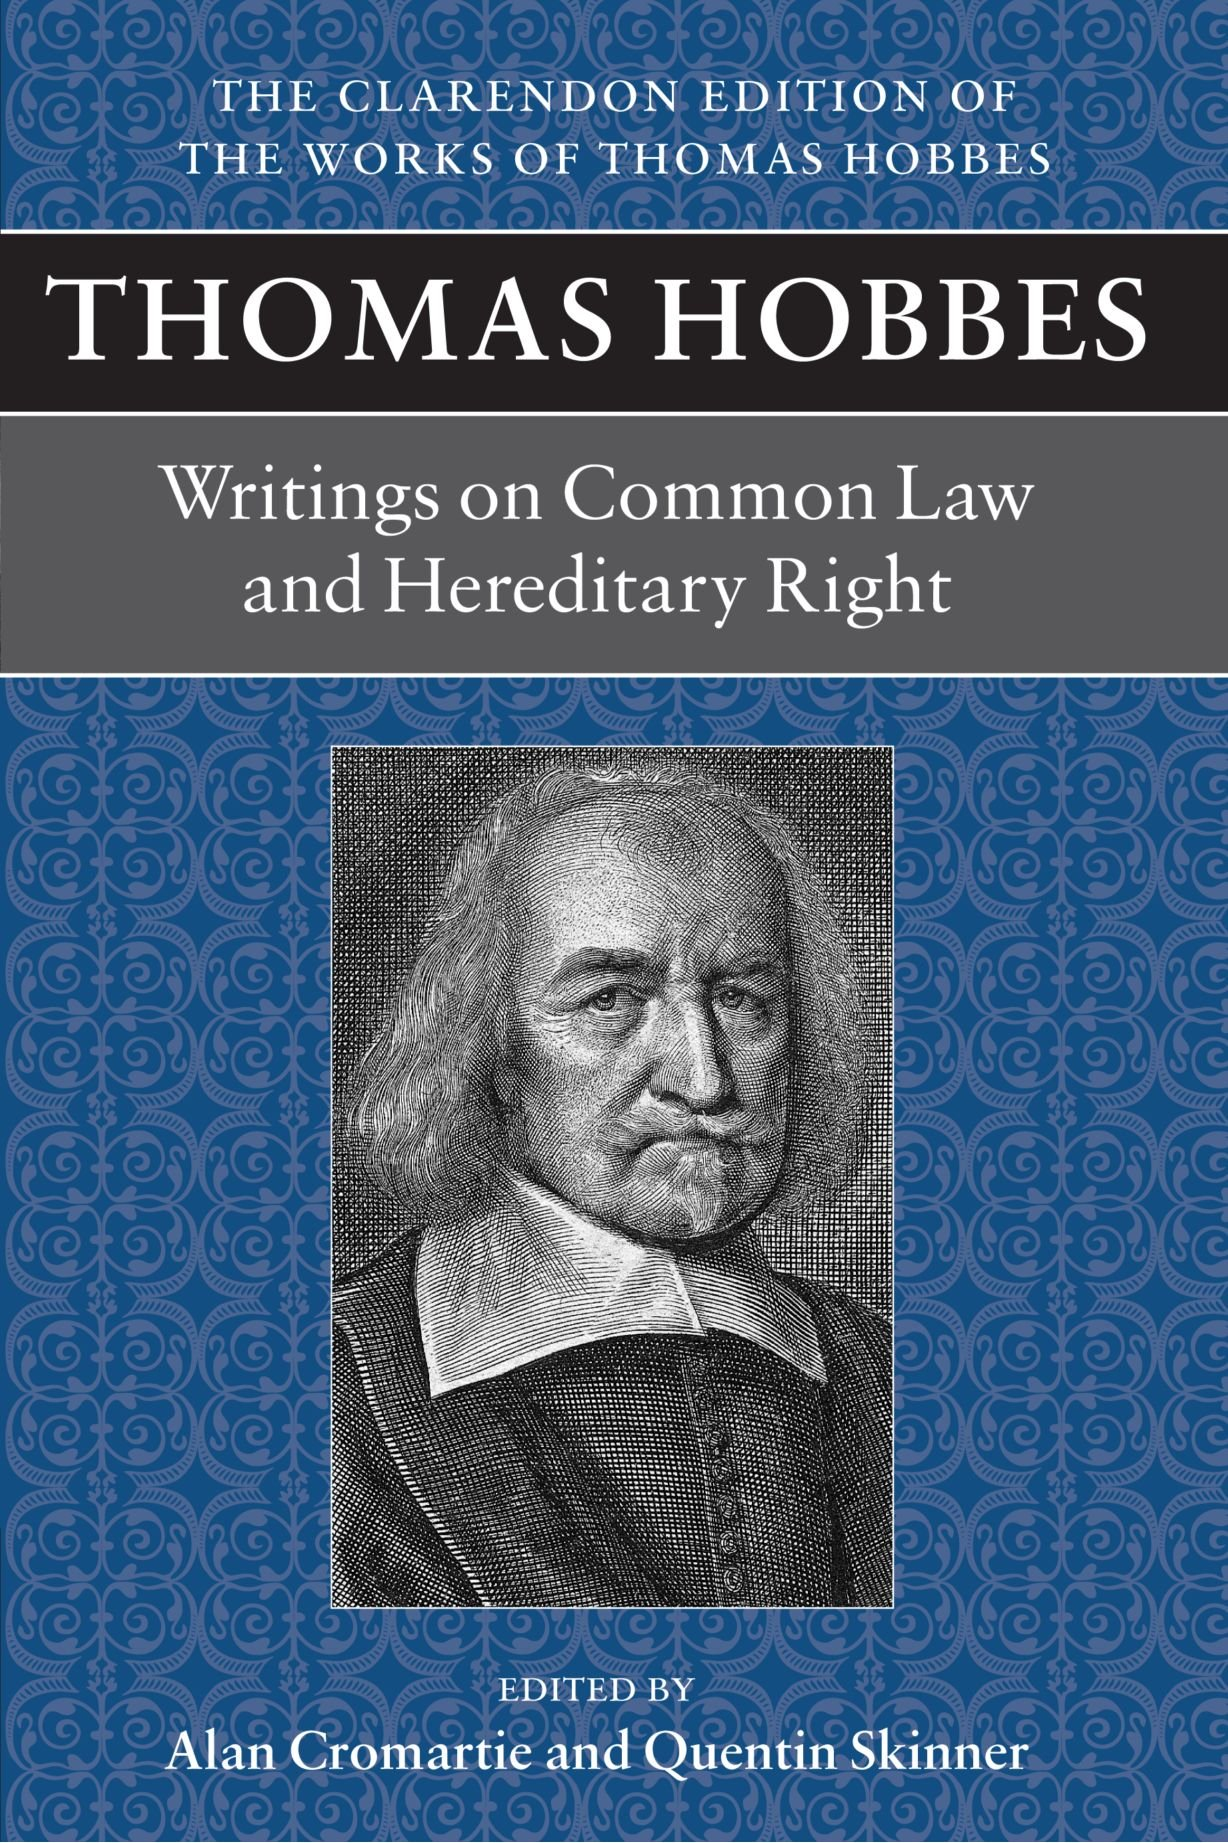 Thomas Hobbes: Writings on Common Law & Hereditary Right (Clarendon Edition of the Works of Thomas Hobbes) by Oxford University Press